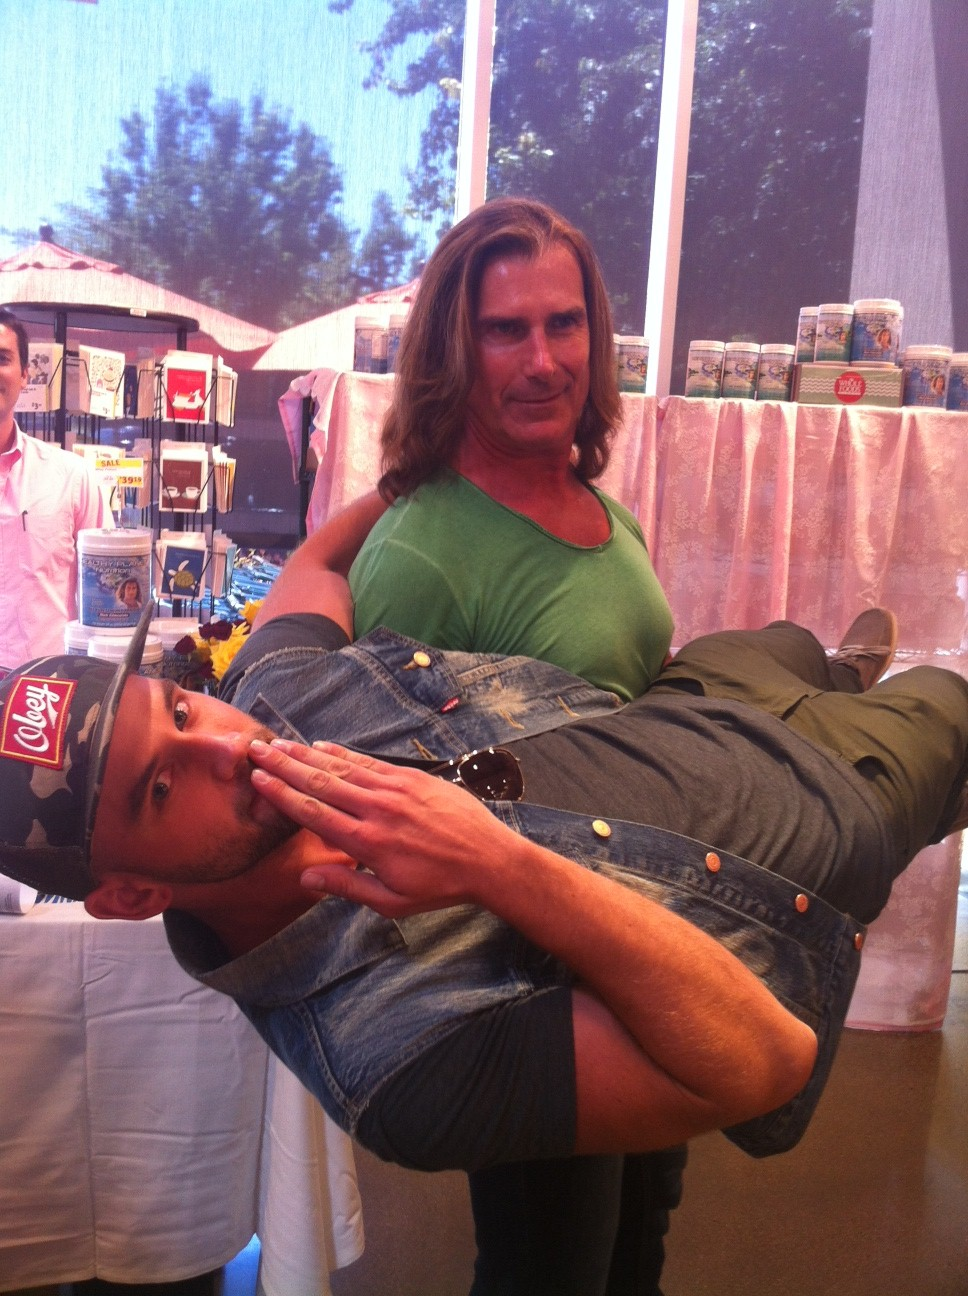 If you ever meet Fabio in real life, he will totally let you do this to him.